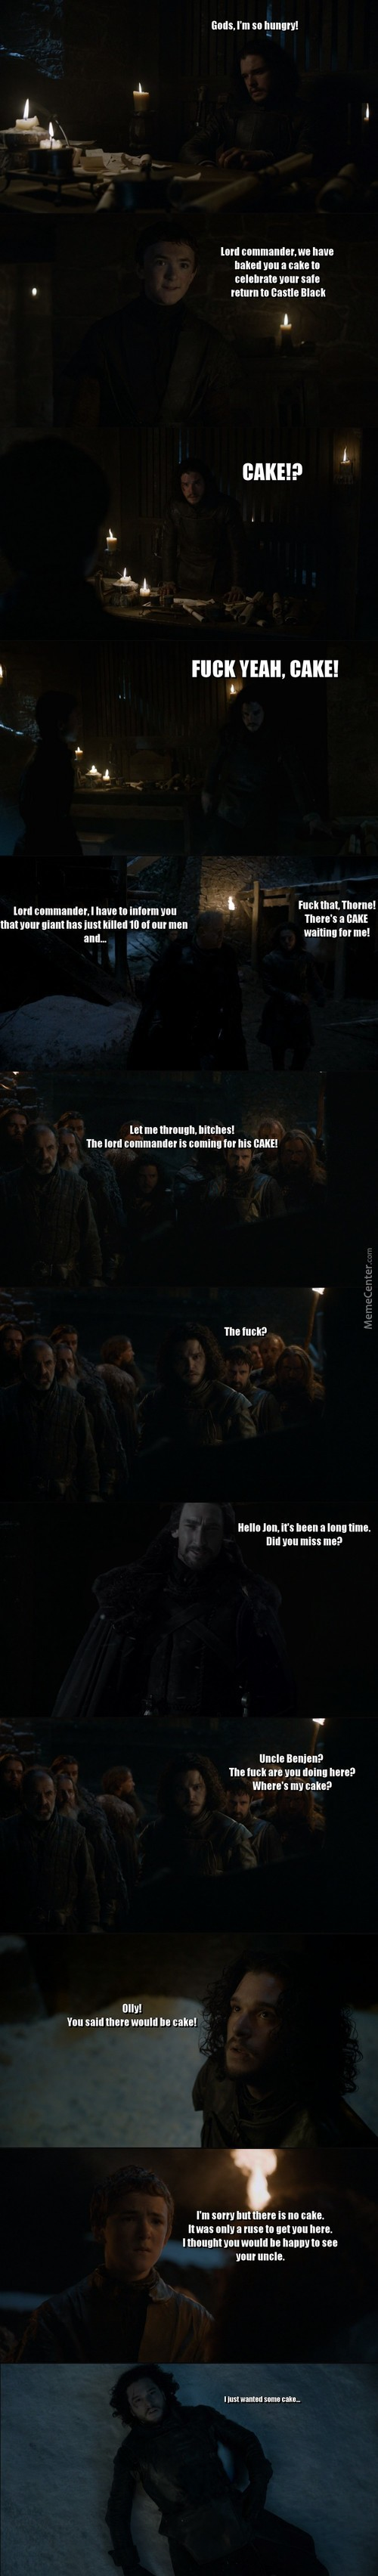 [Game Of Thrones Spoilers] Alternative Ending For The Season 5 Finale